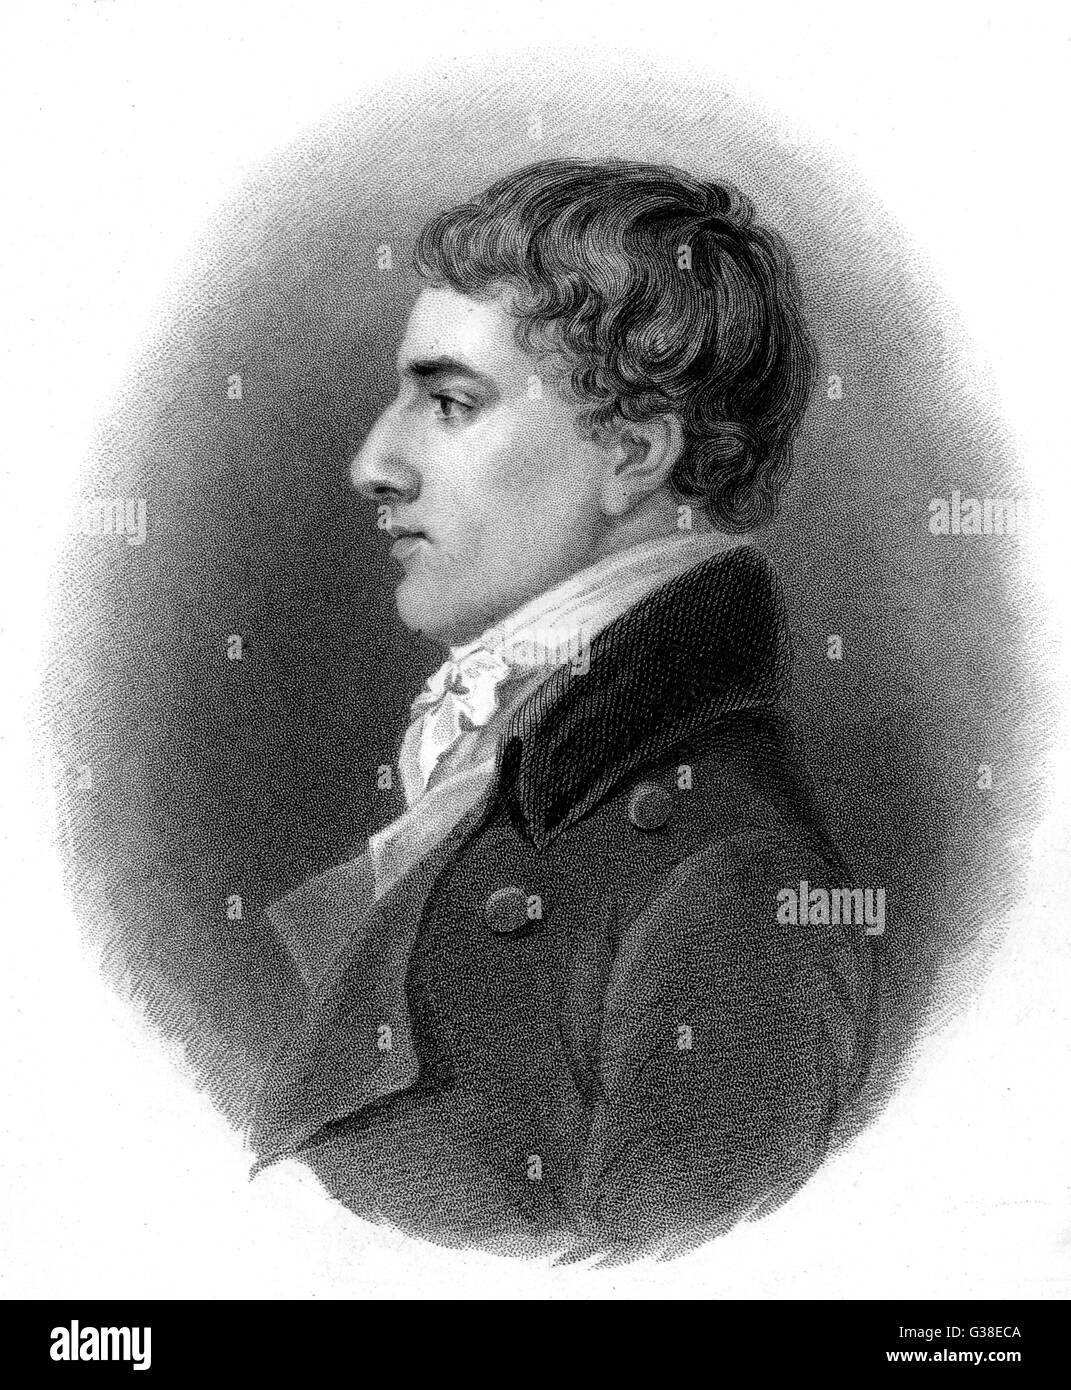 charles lamb writer stock photos charles lamb writer stock charles lamb english writer and critic date 1775 1834 stock image